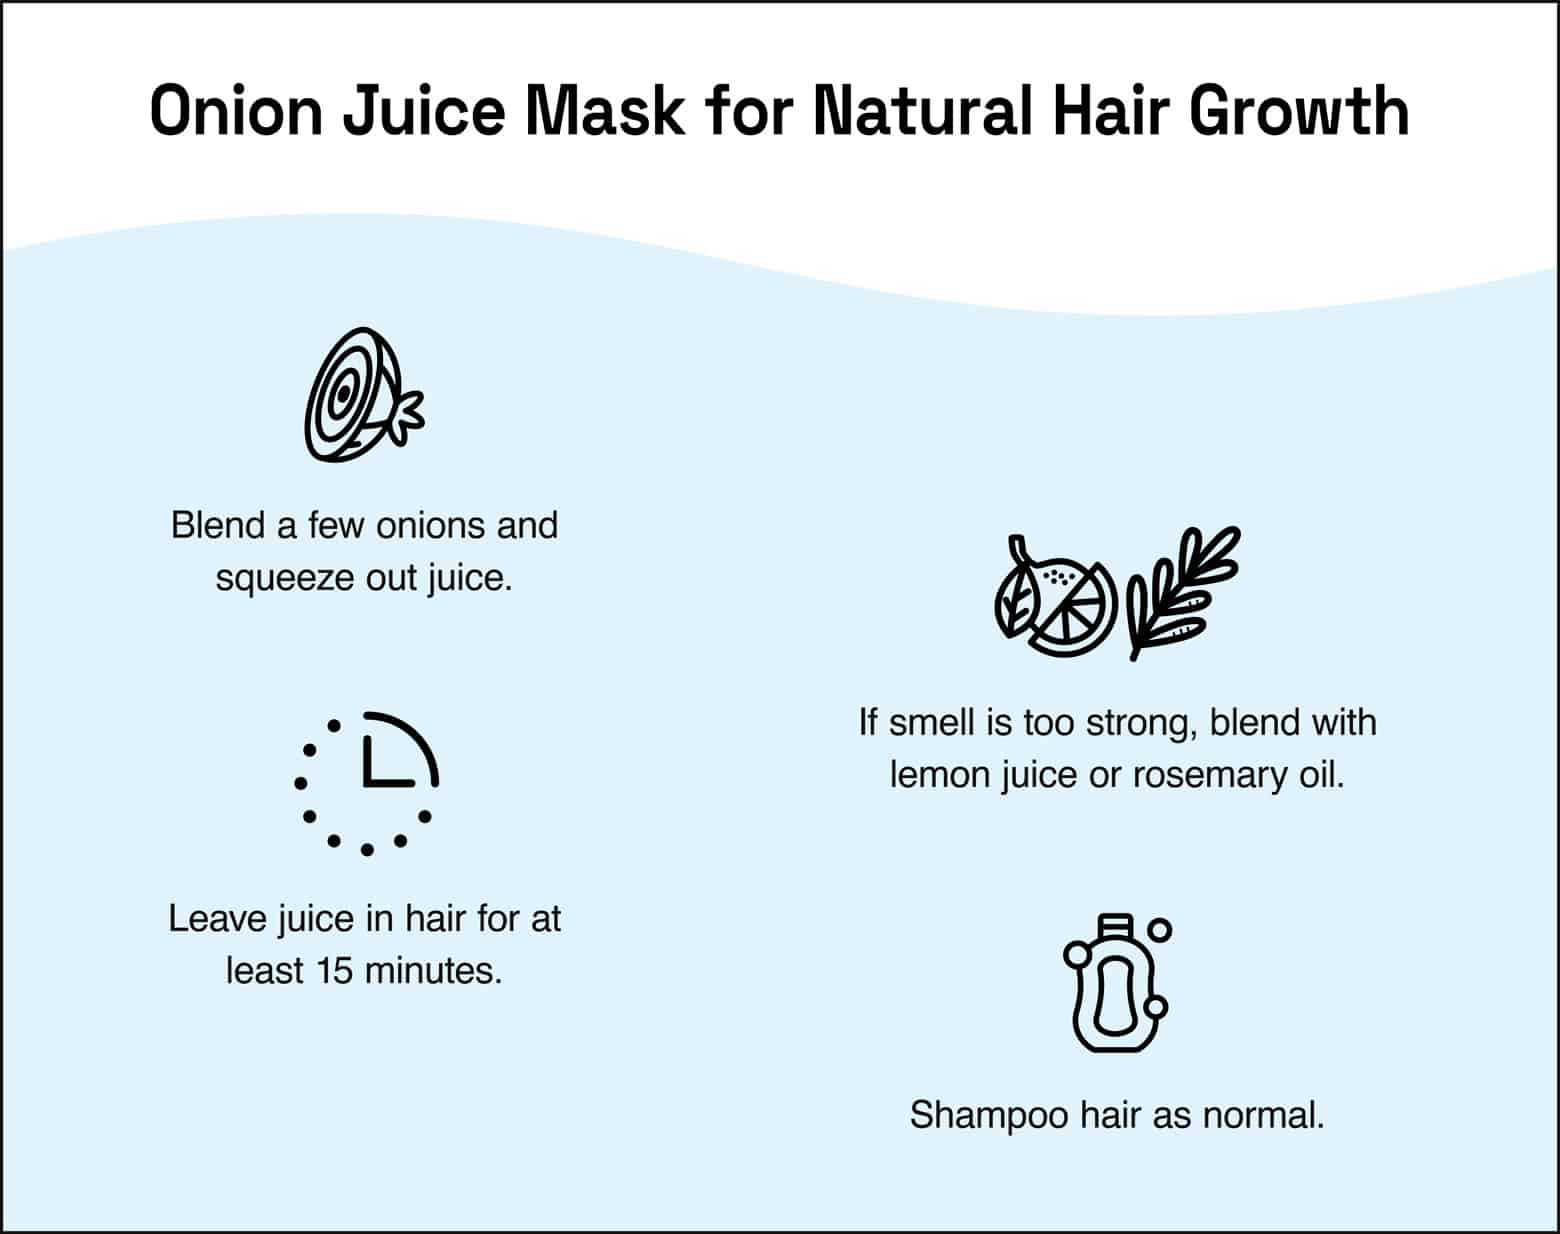 onion juice mask for natural hair growth instructions